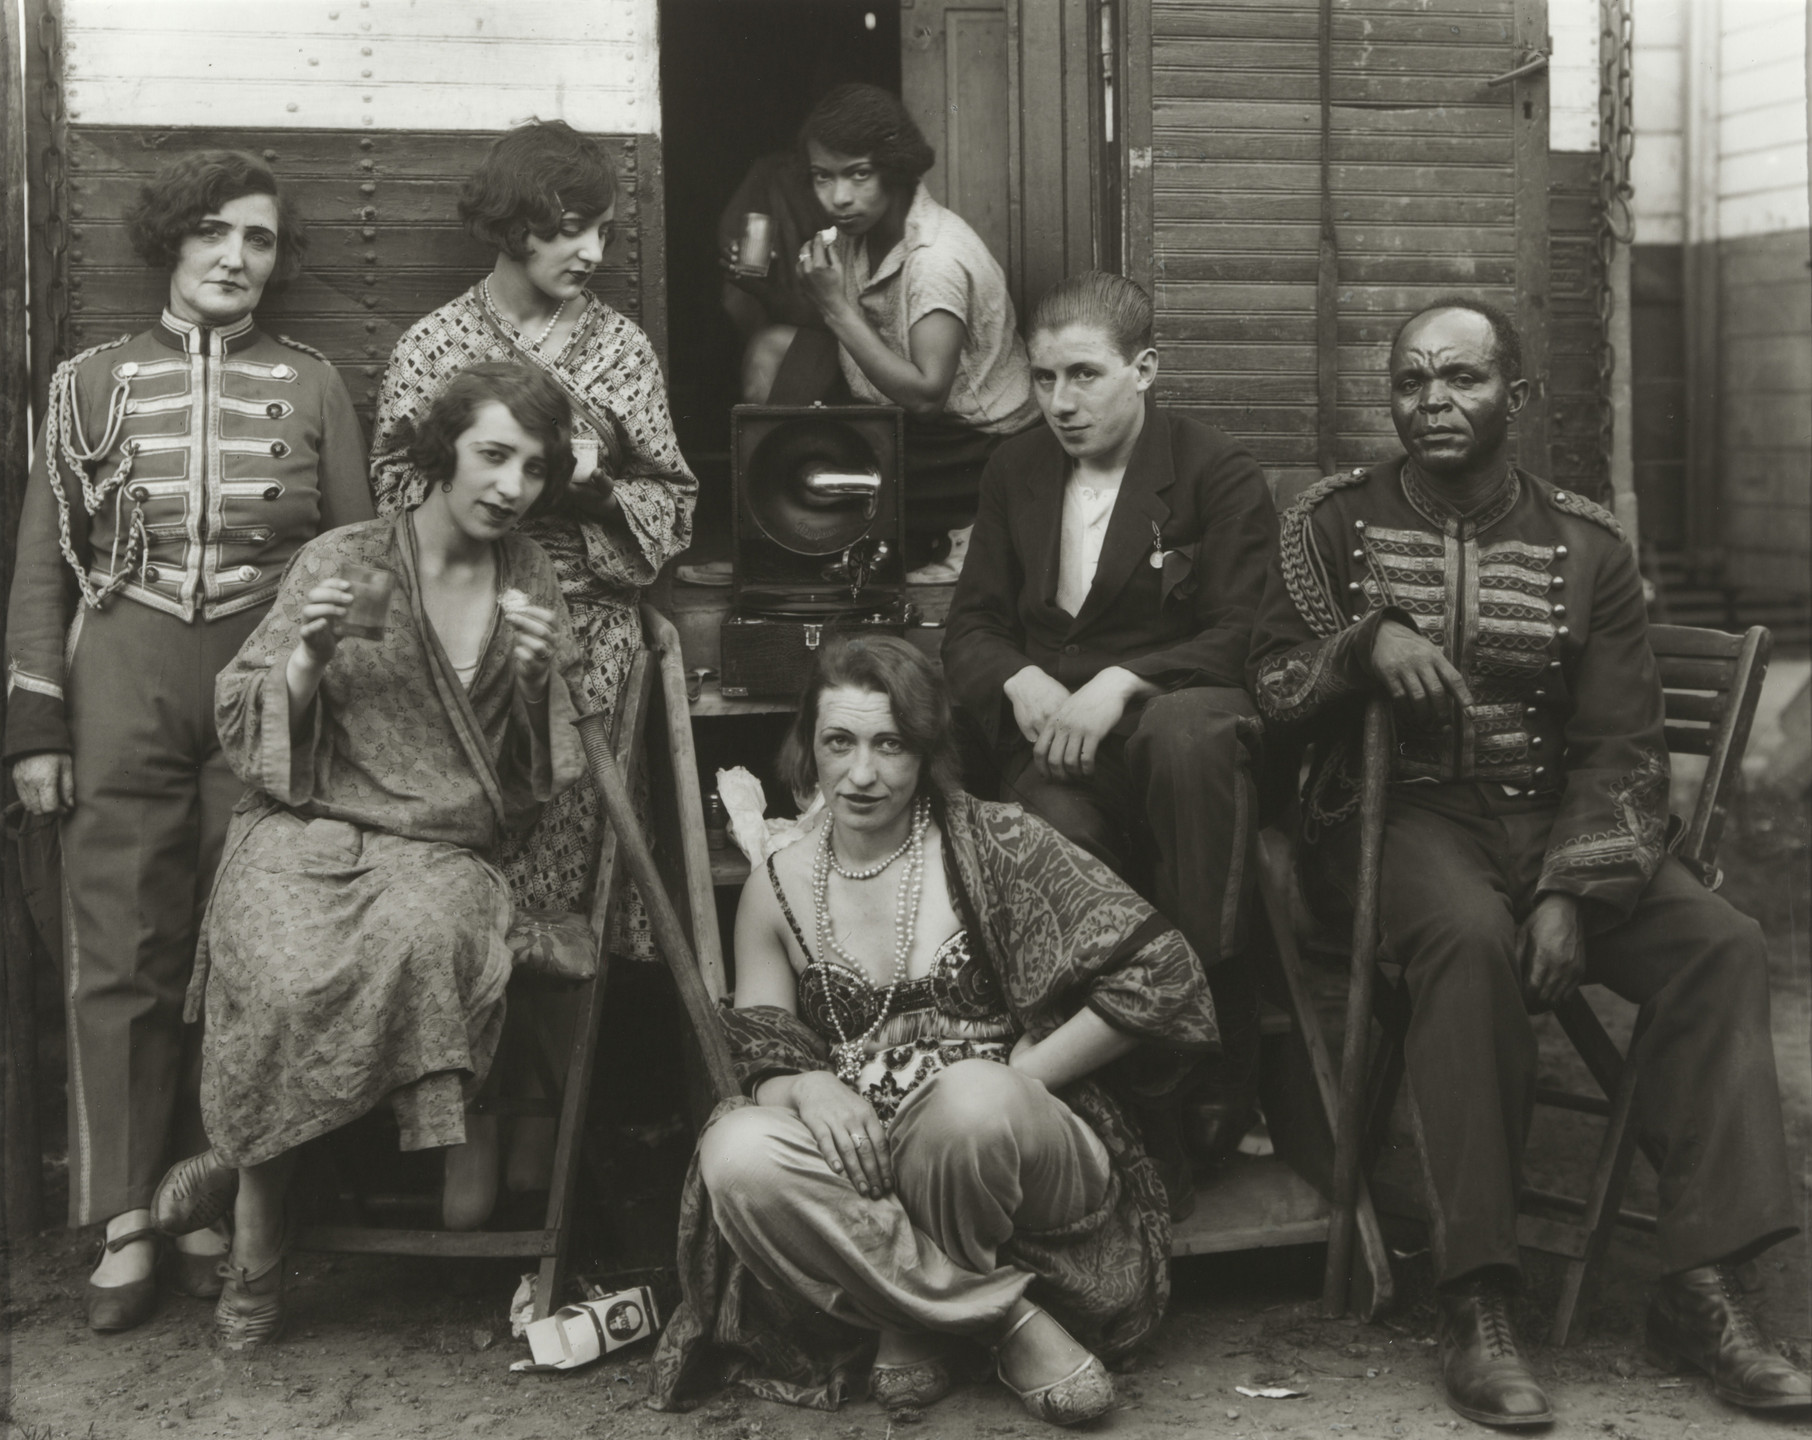 August Sander. Circus Artists. 1926-32